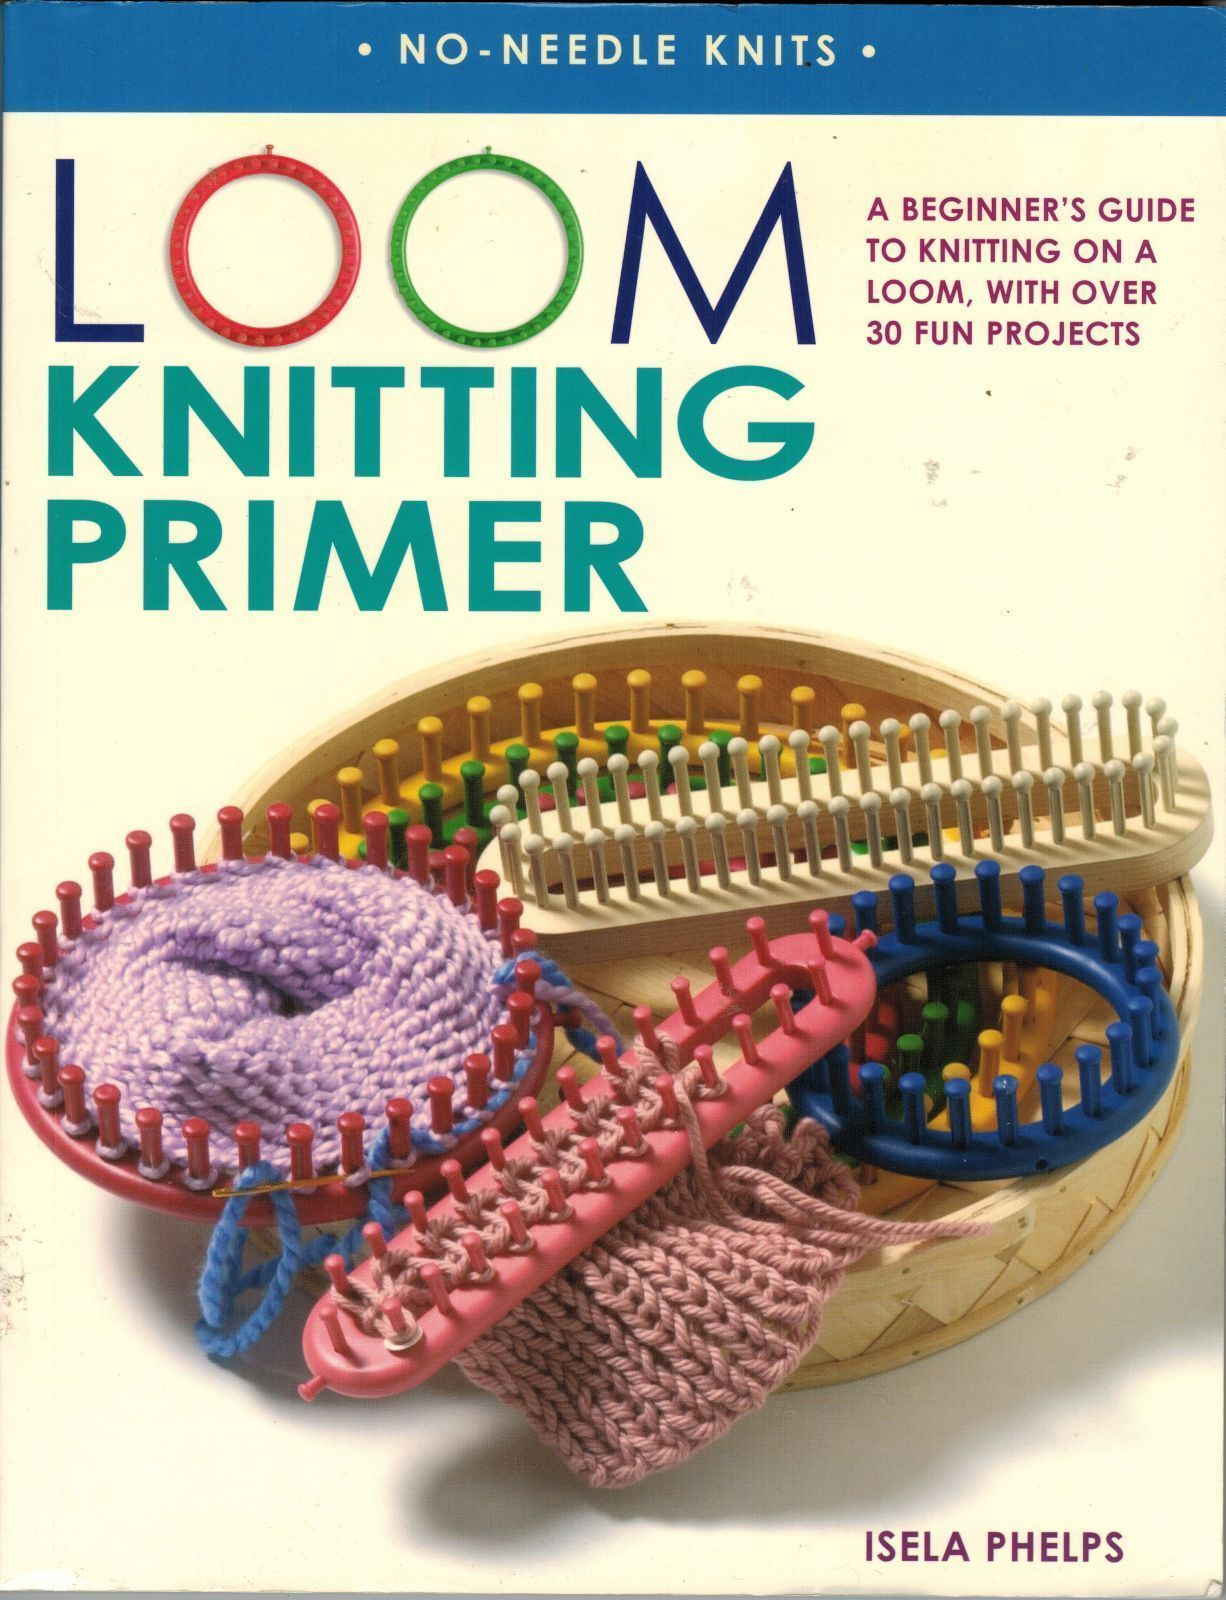 30 Projects Loom Knitting Primer Beginner\'s Guide No Needle Knits ...